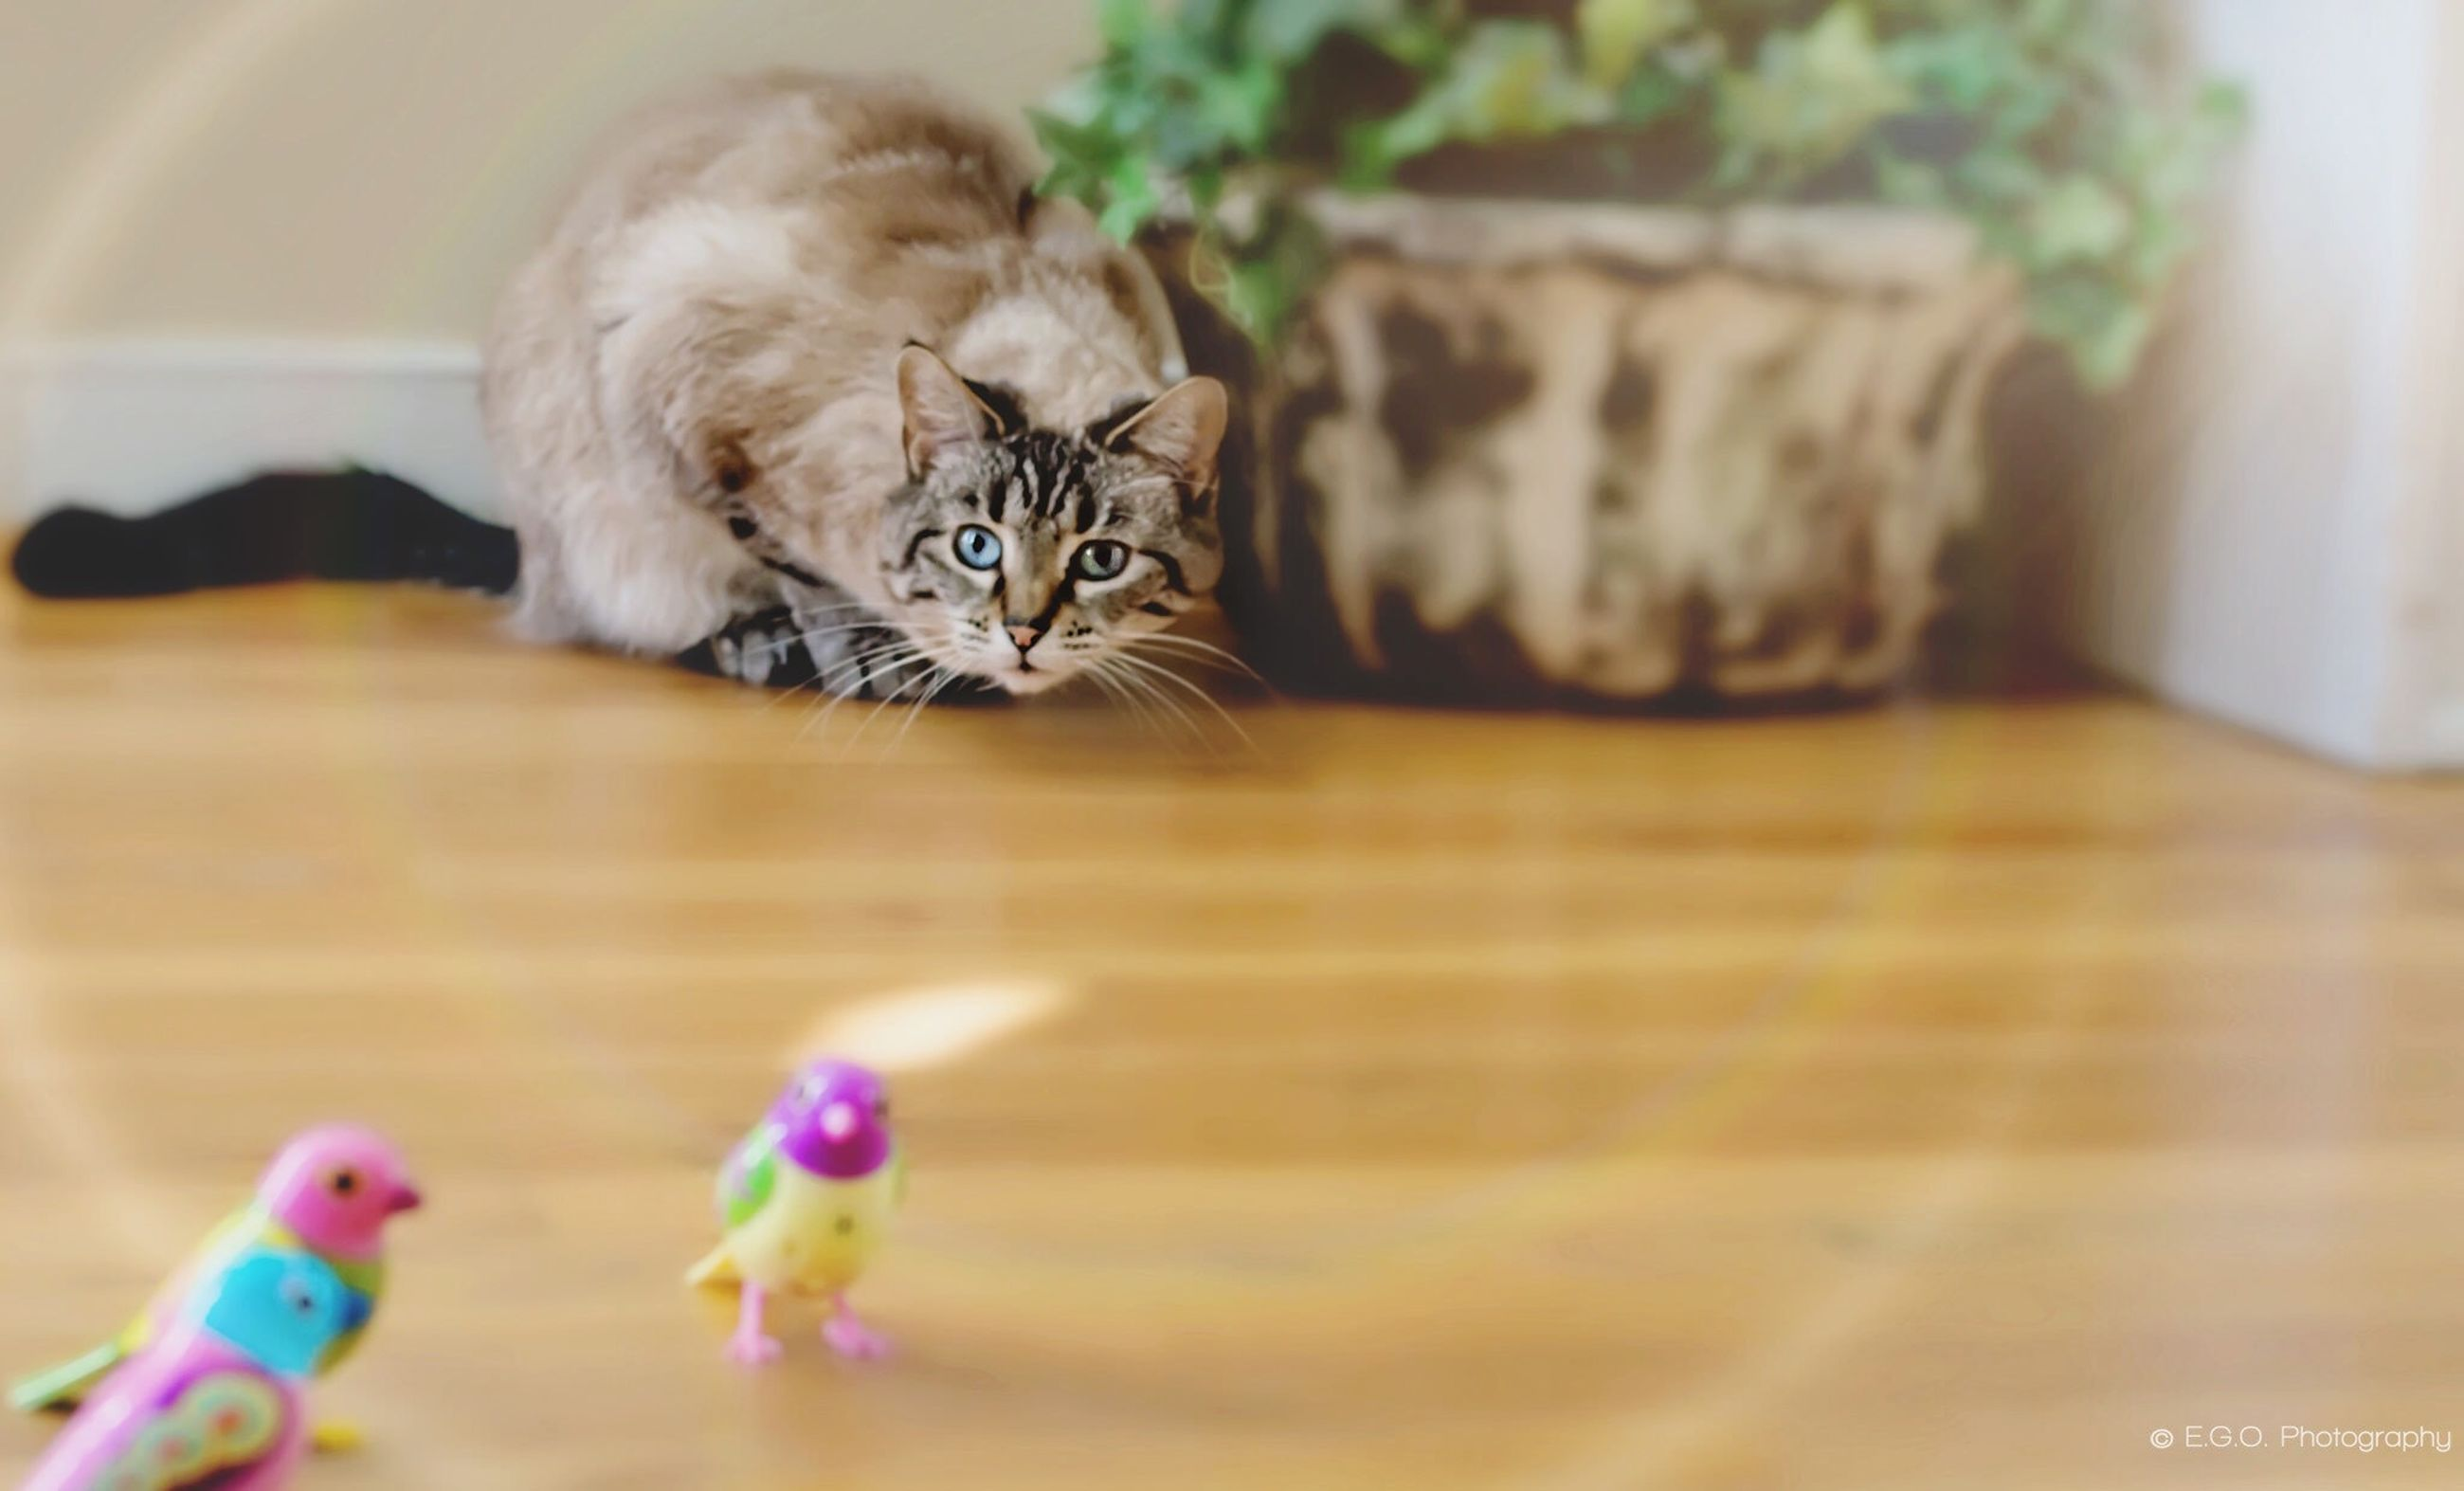 one animal, animal themes, pets, domestic animals, domestic cat, mammal, indoors, flower, cat, feline, relaxation, high angle view, full length, home interior, table, close-up, no people, flooring, selective focus, wood - material